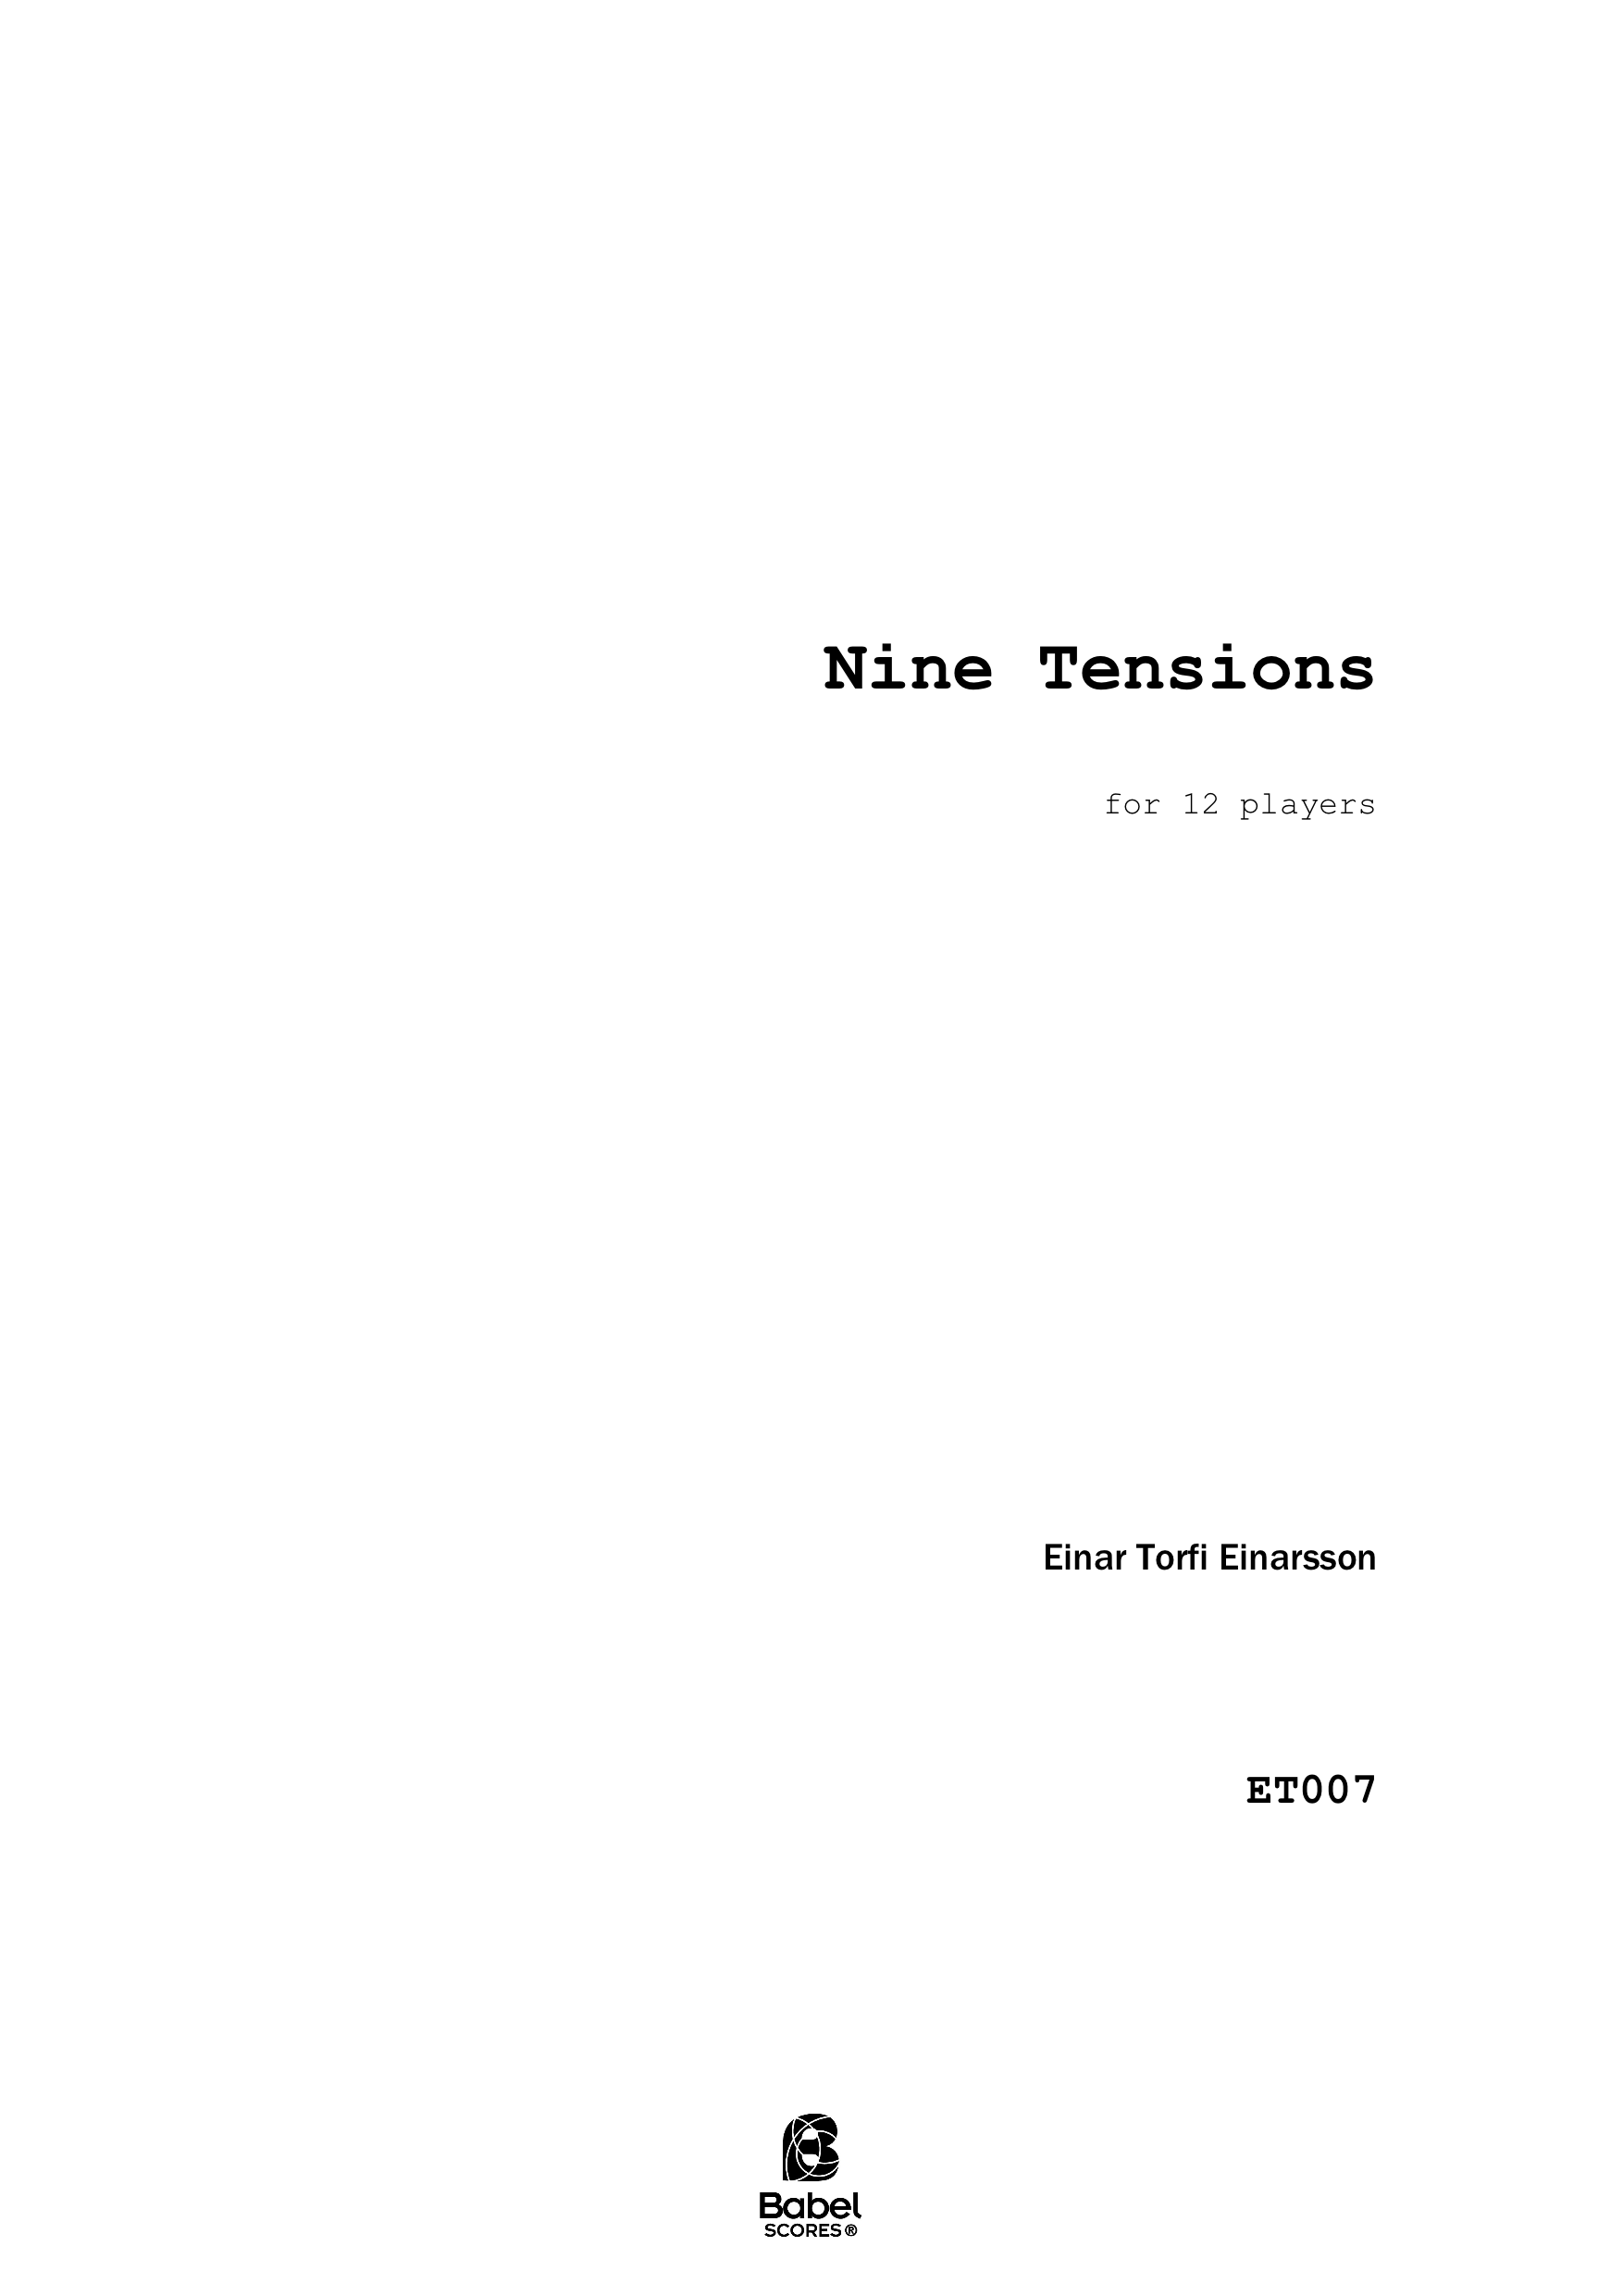 Nine Tensions_full score_A3 z 2 1 35